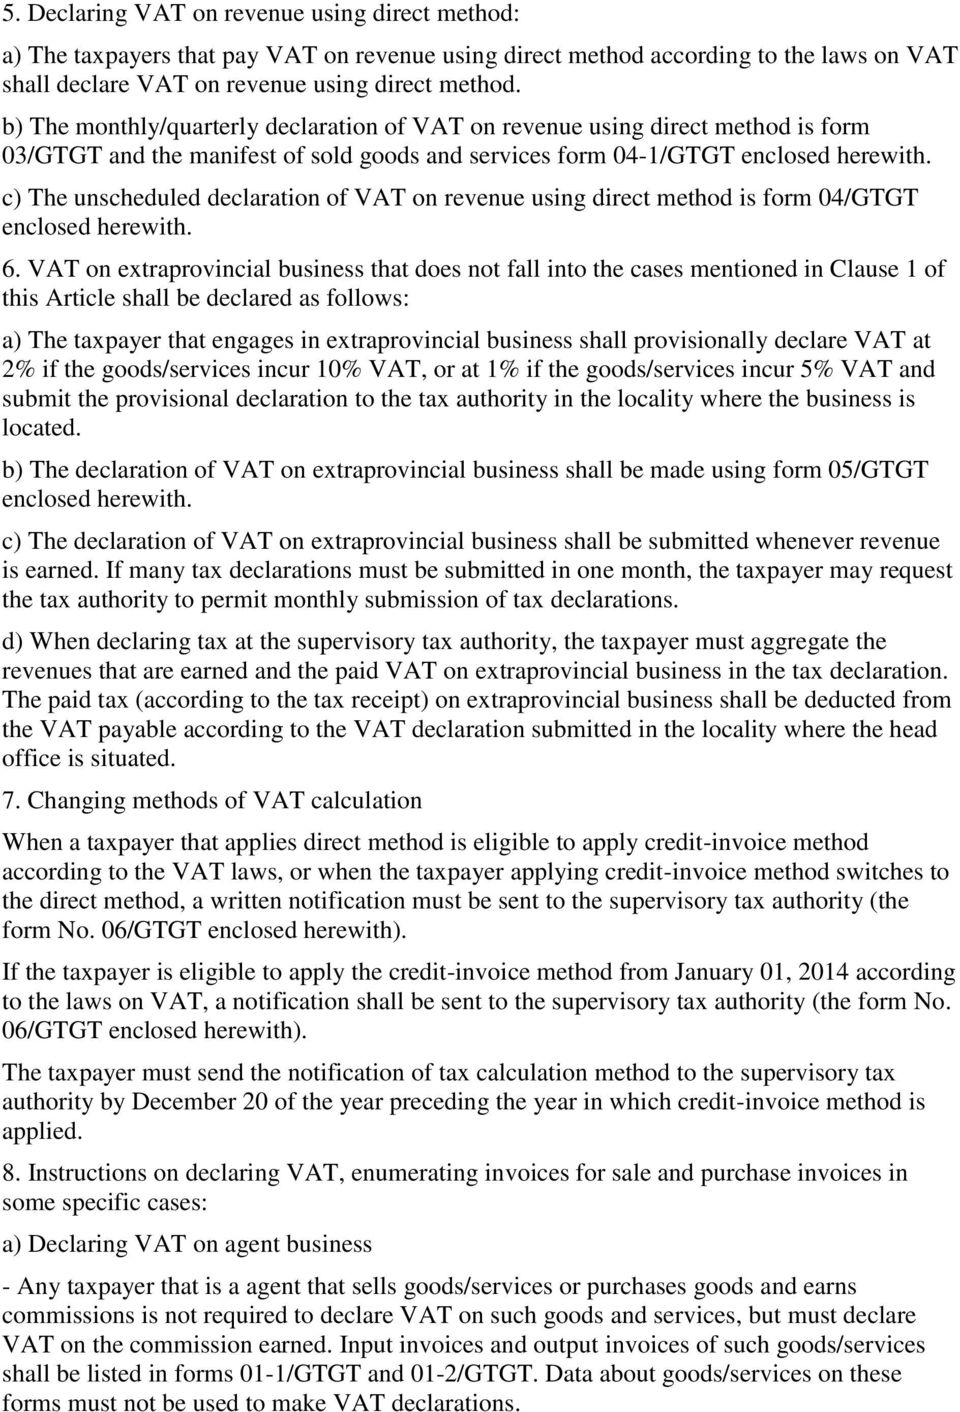 Ministry Of Finance Socialist Republic Vietnam Independence Next To Basic Electricitygtgt C The Unscheduled Declaration Vat On Revenue Using Direct Method Is Form 04